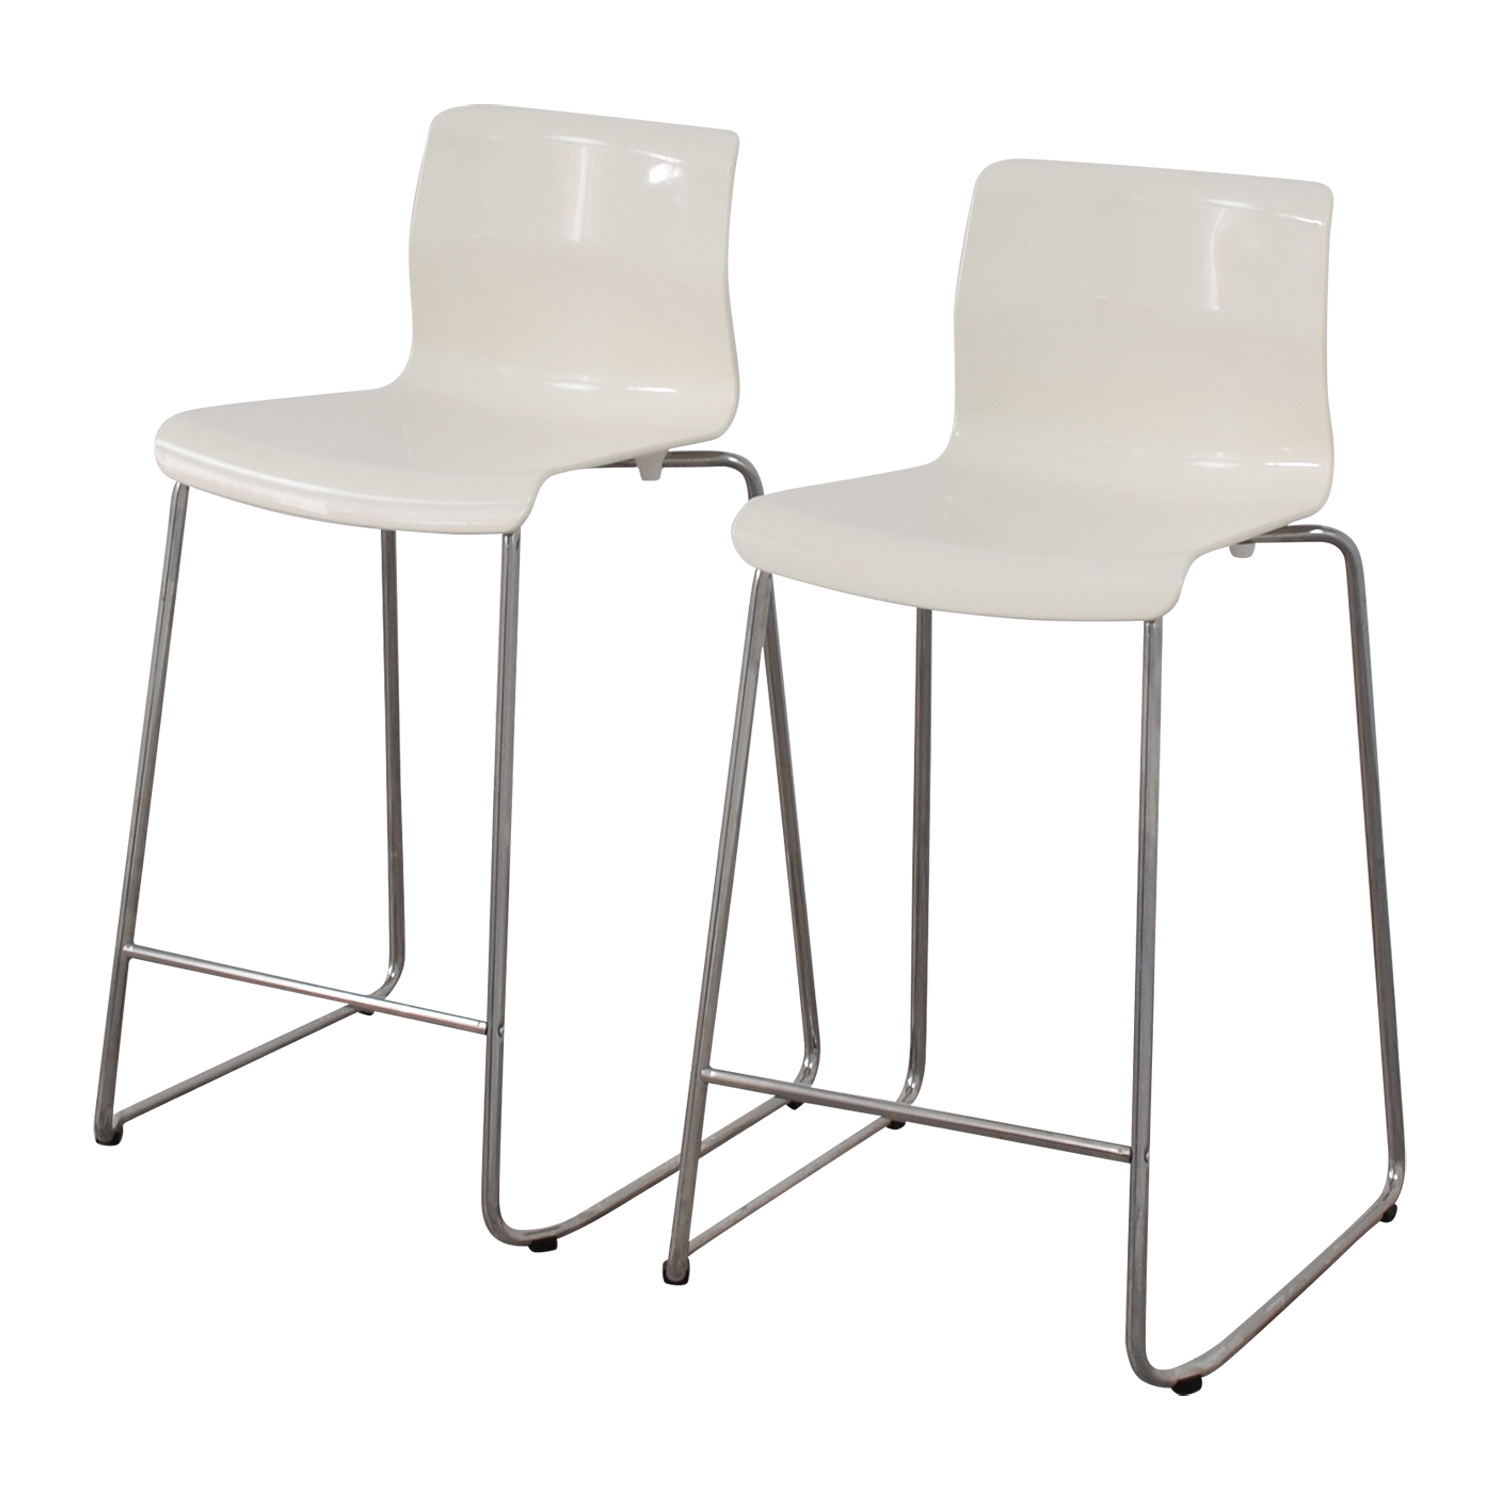 85 off ikea ikea white glen bar stools chairs. Black Bedroom Furniture Sets. Home Design Ideas